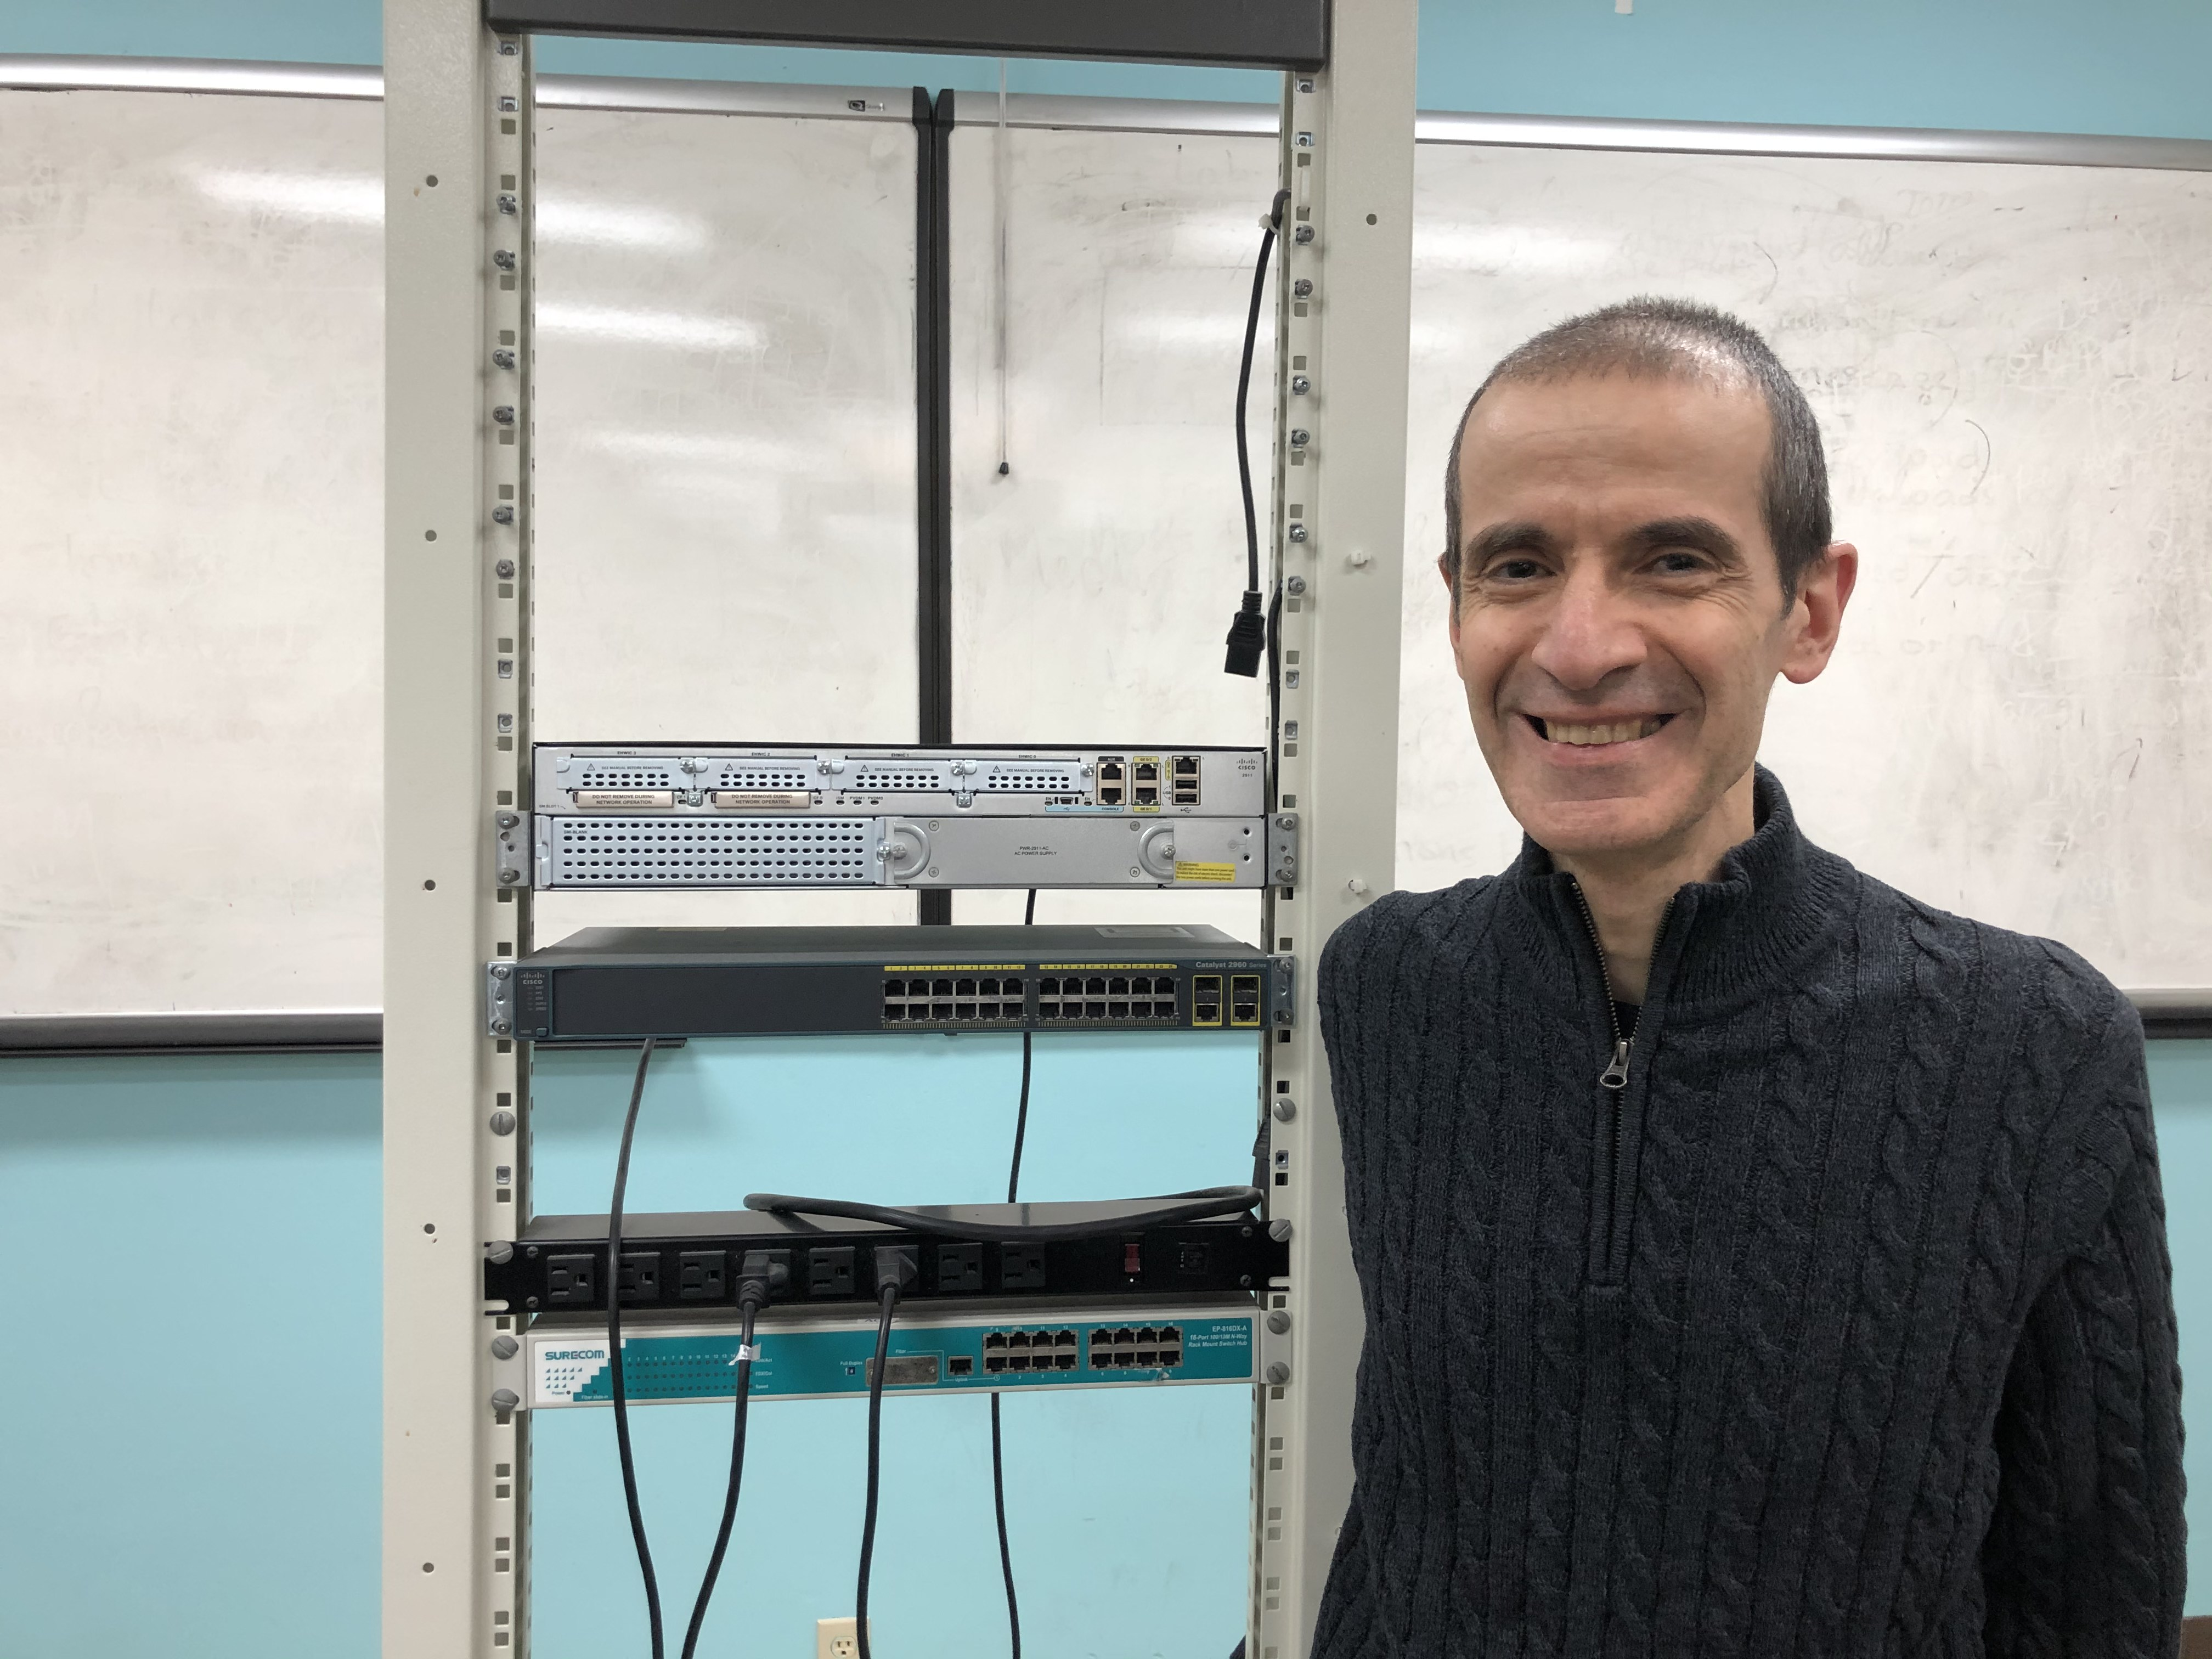 Computer Networking Training: Meet the Instructor & Tour Our Program